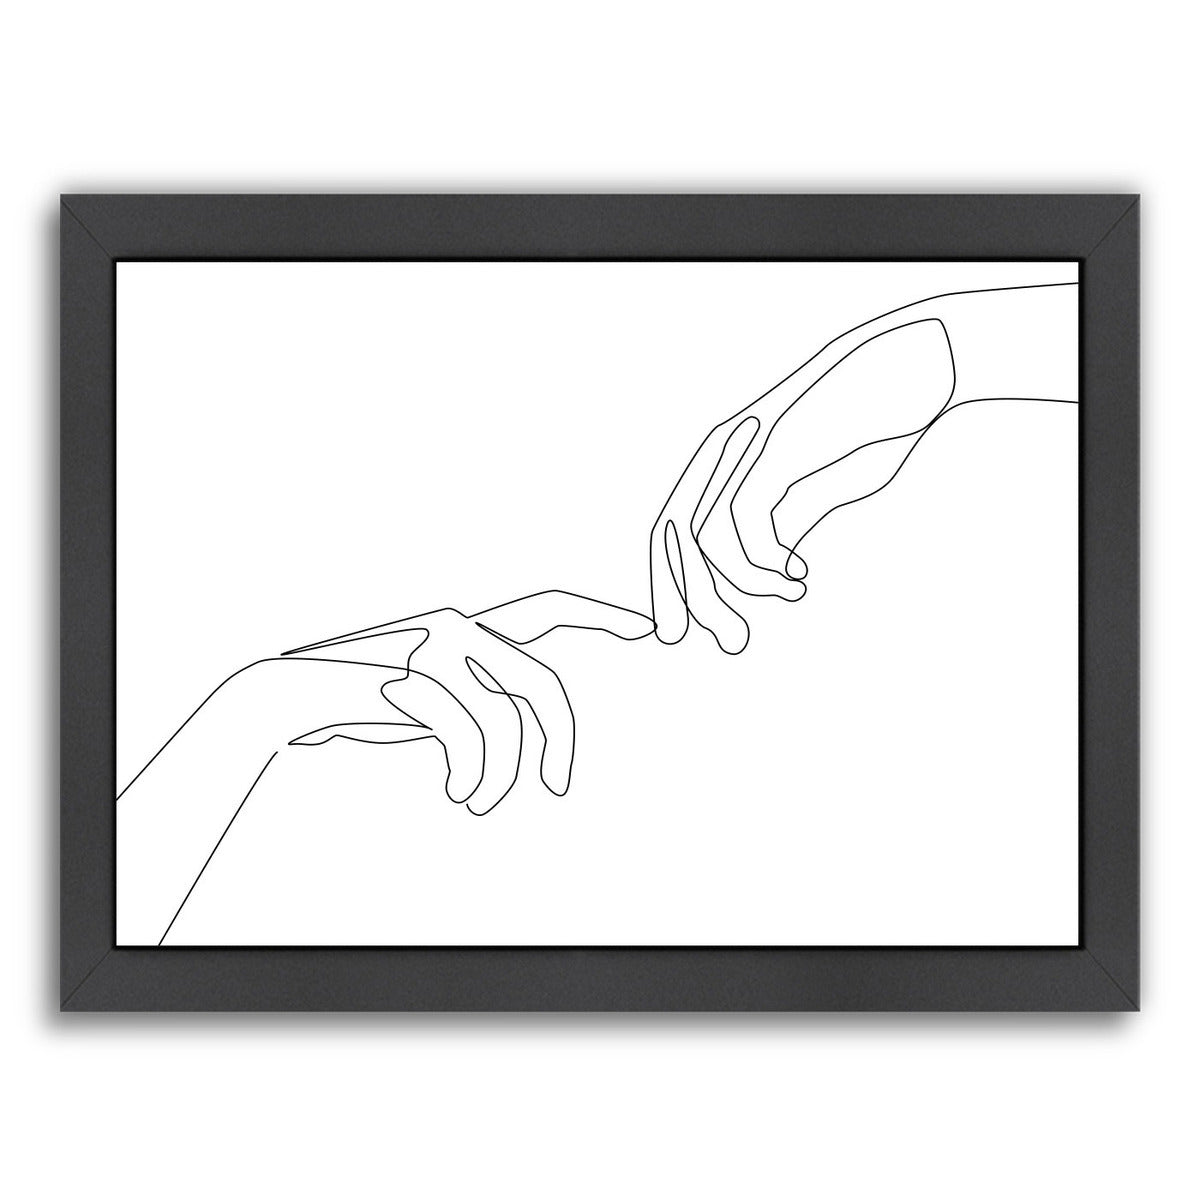 Finger Touch by Explicit Design Framed Print - Wall Art - Americanflat